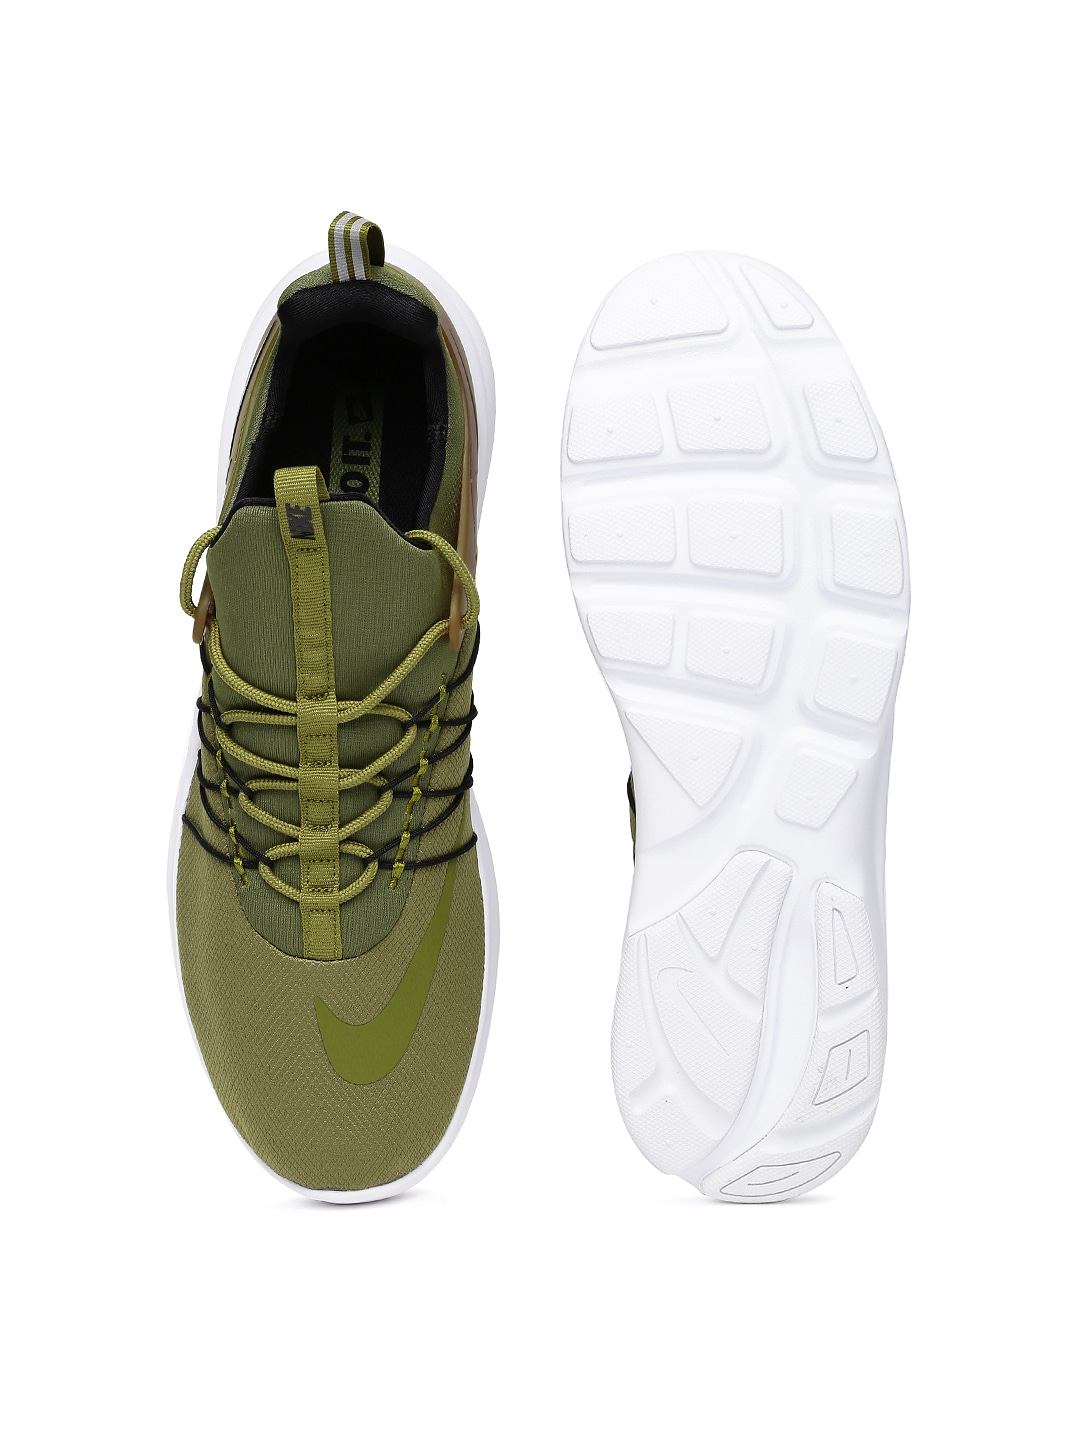 c3b5b028808 ... official olive 819803 330 nike darwin buy nike darwin online in india .  bfea6 52d4e